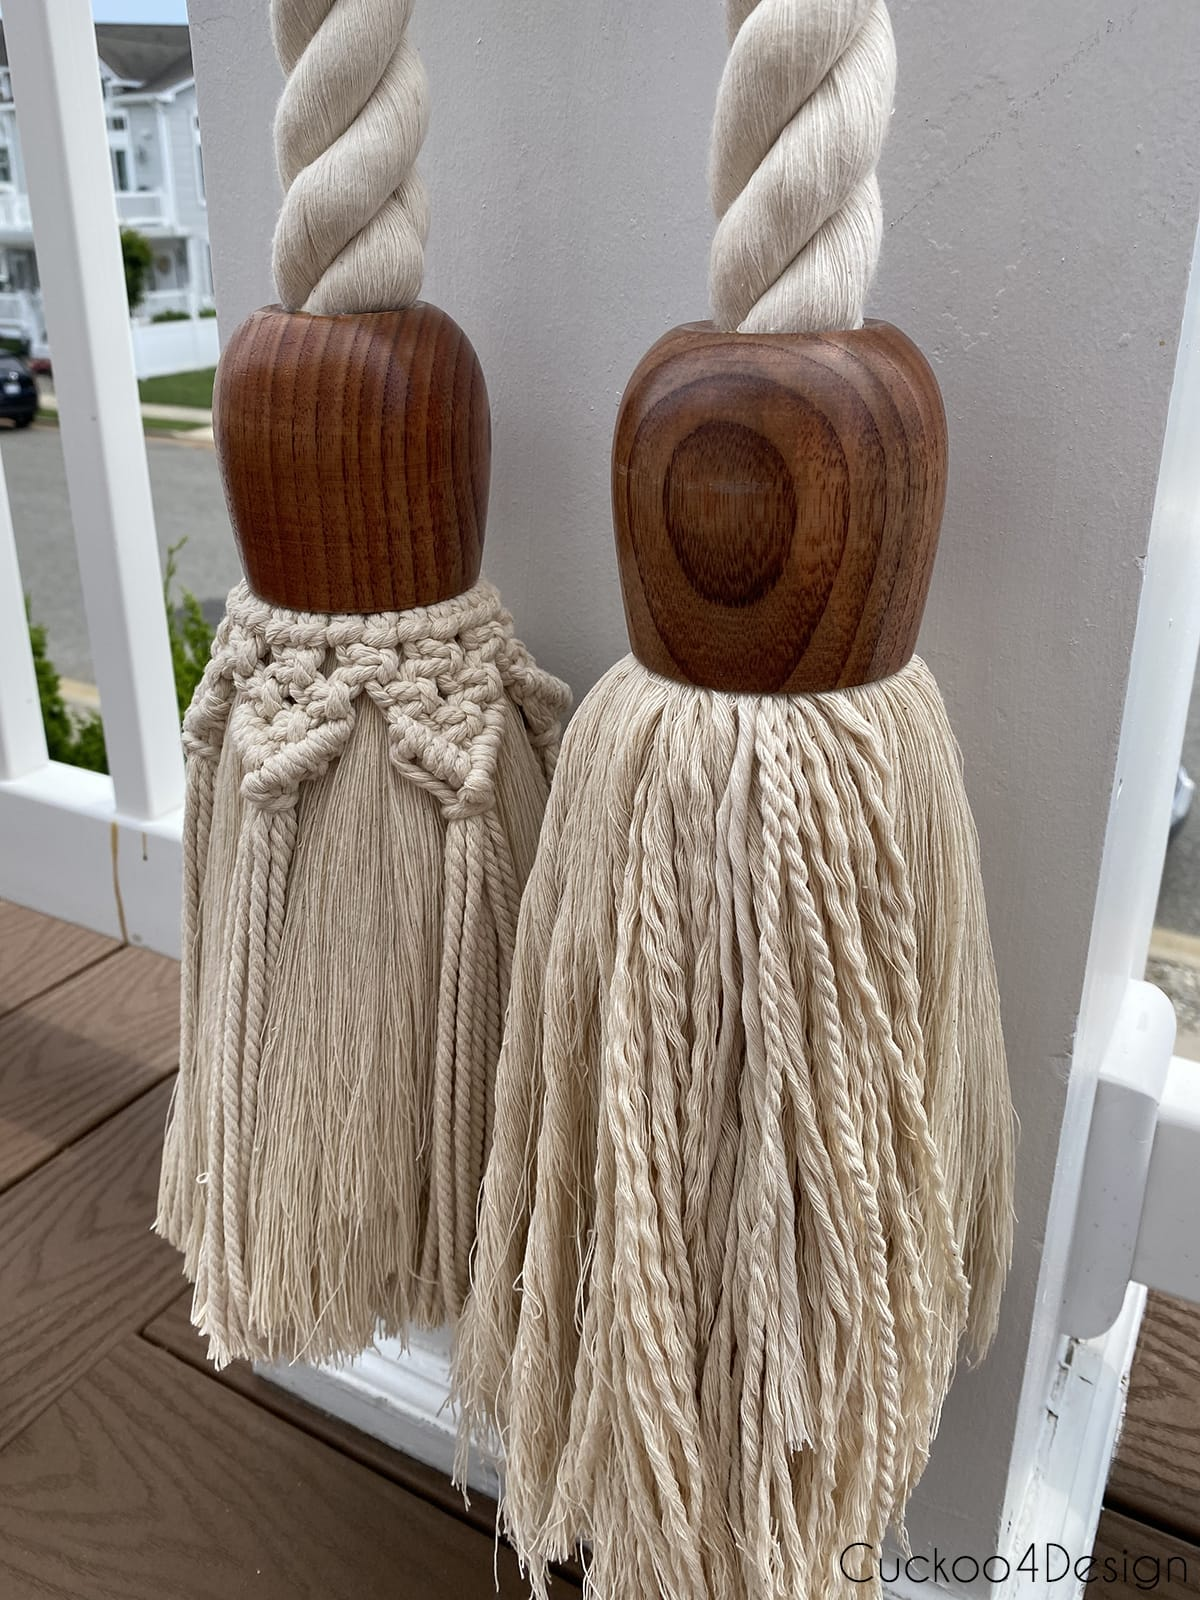 view of both tassels before trimming